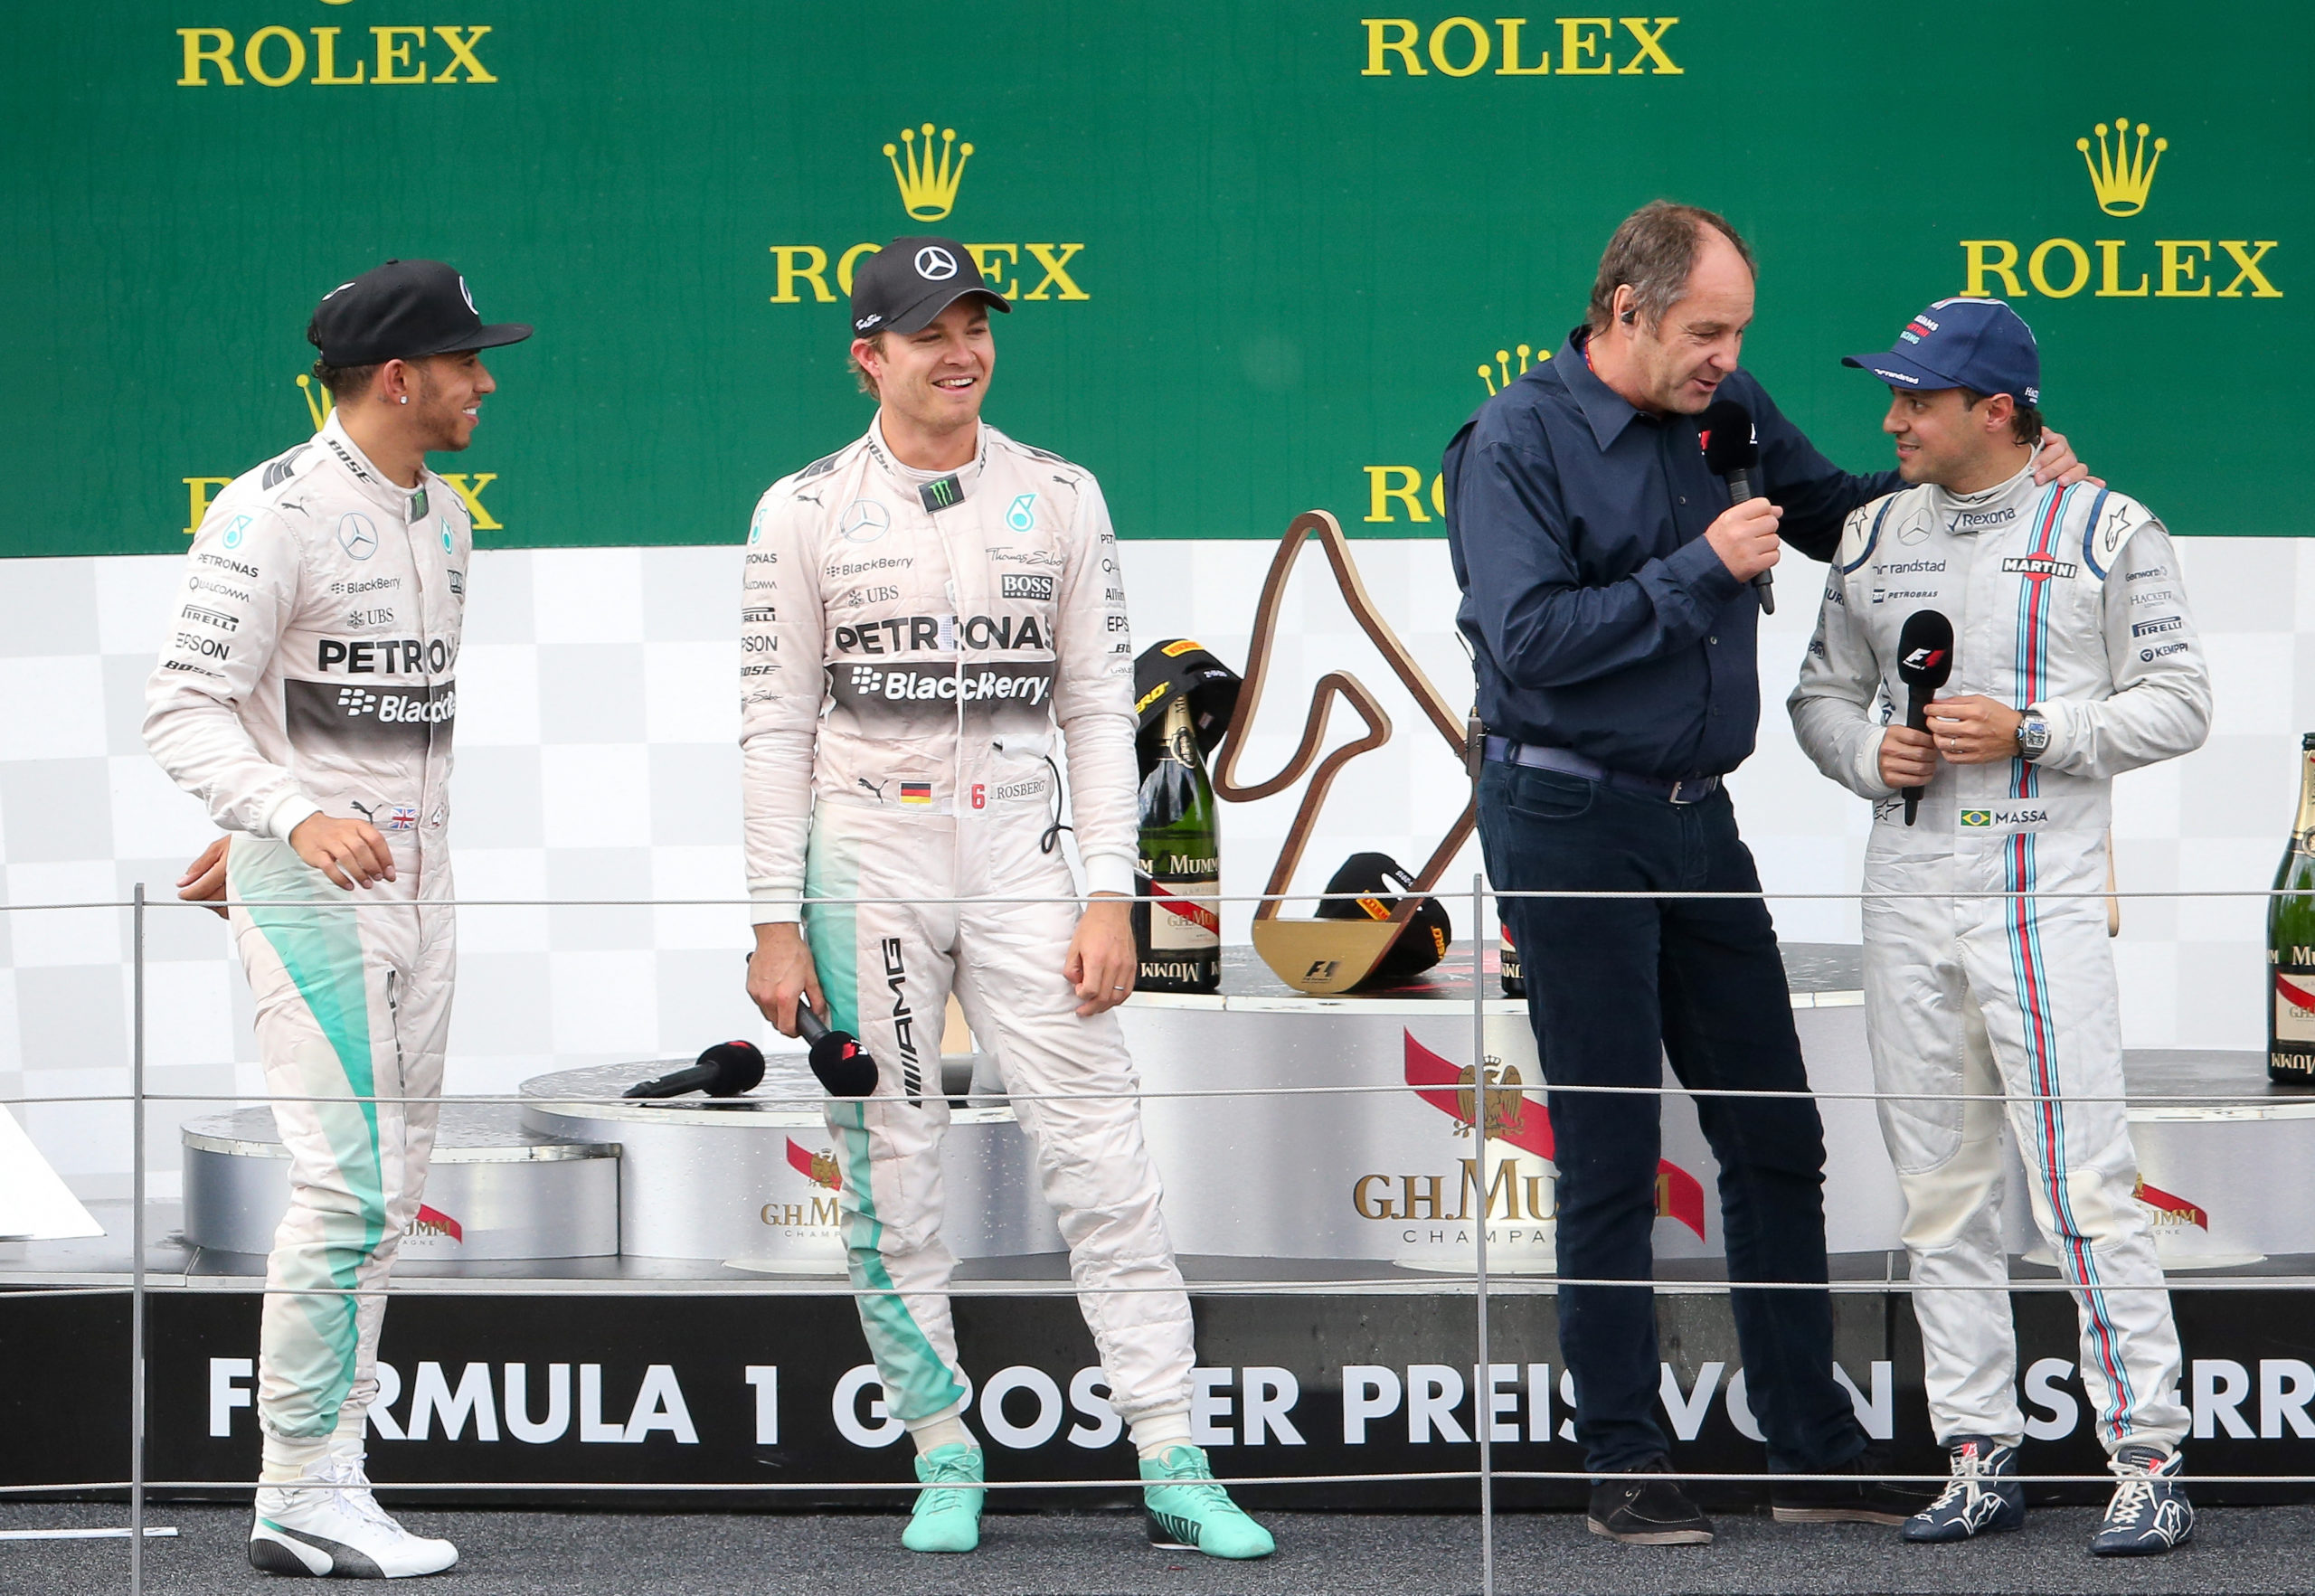 SPIELBERG,AUSTRIA,21.JUN.15 - MOTORSPORTS, FORMULA 1 - Grand Prix of Austria, Red Bull Ring. Image shows Lewis Hamilton (GBR/ Mercedes GP), Nico Rosberg (GER/ Mercedes GP), Gerhard Berger and Felipe Massa (BRA/ Williams F1). Photo: GEPA pictures/ Christian Walgram // GEPA pictures/Red Bull Content Pool // SI201506210659 // Usage for editorial use only //